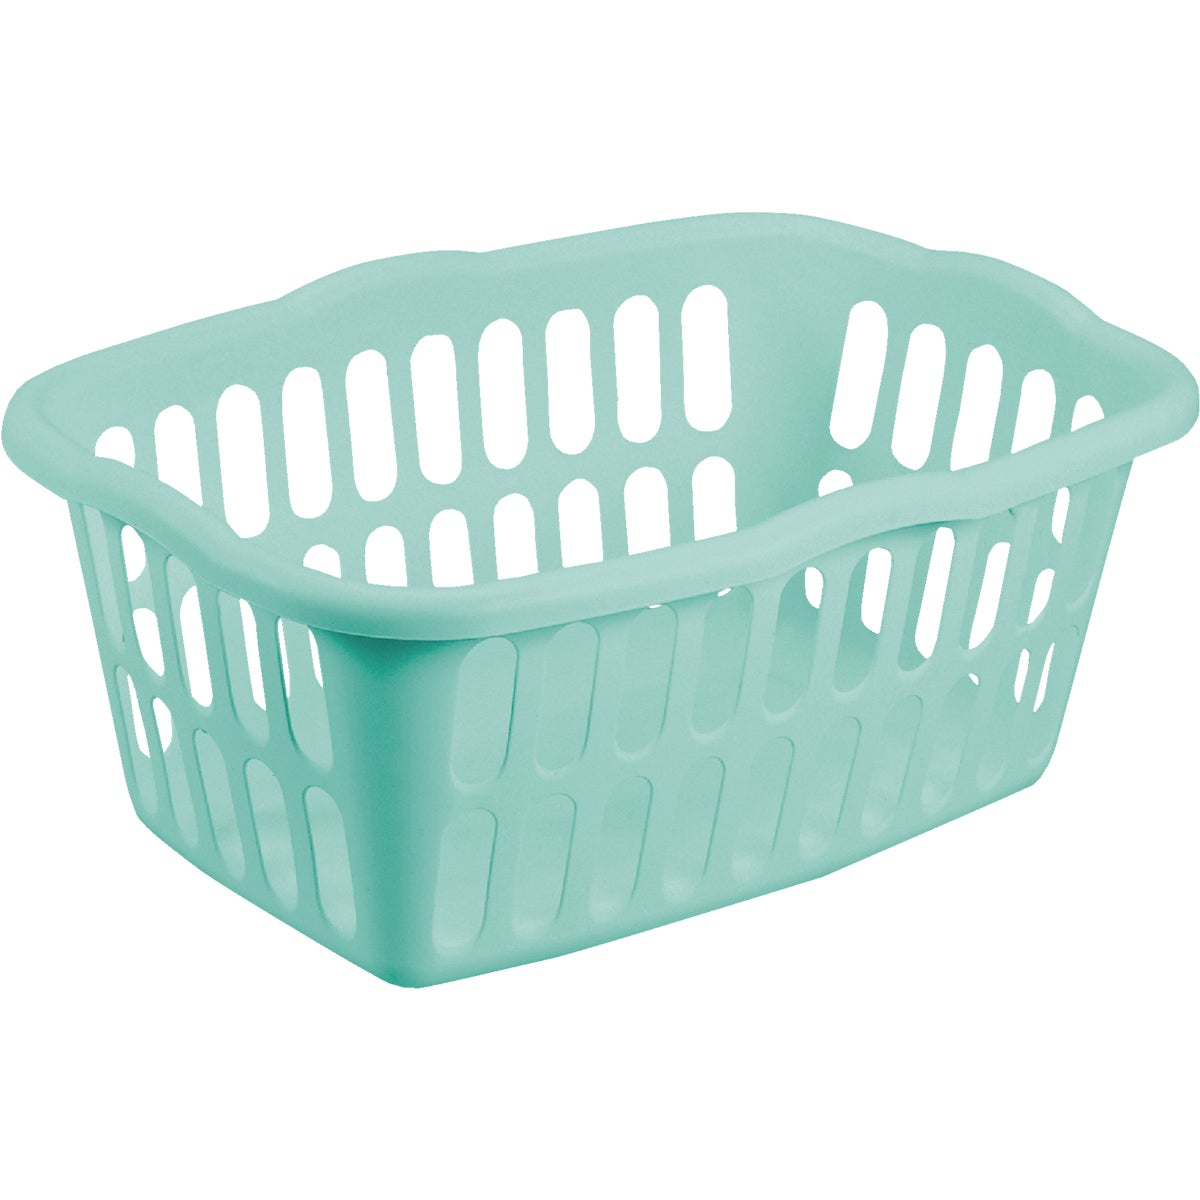 1.5 BU LAUNDRY BASKET